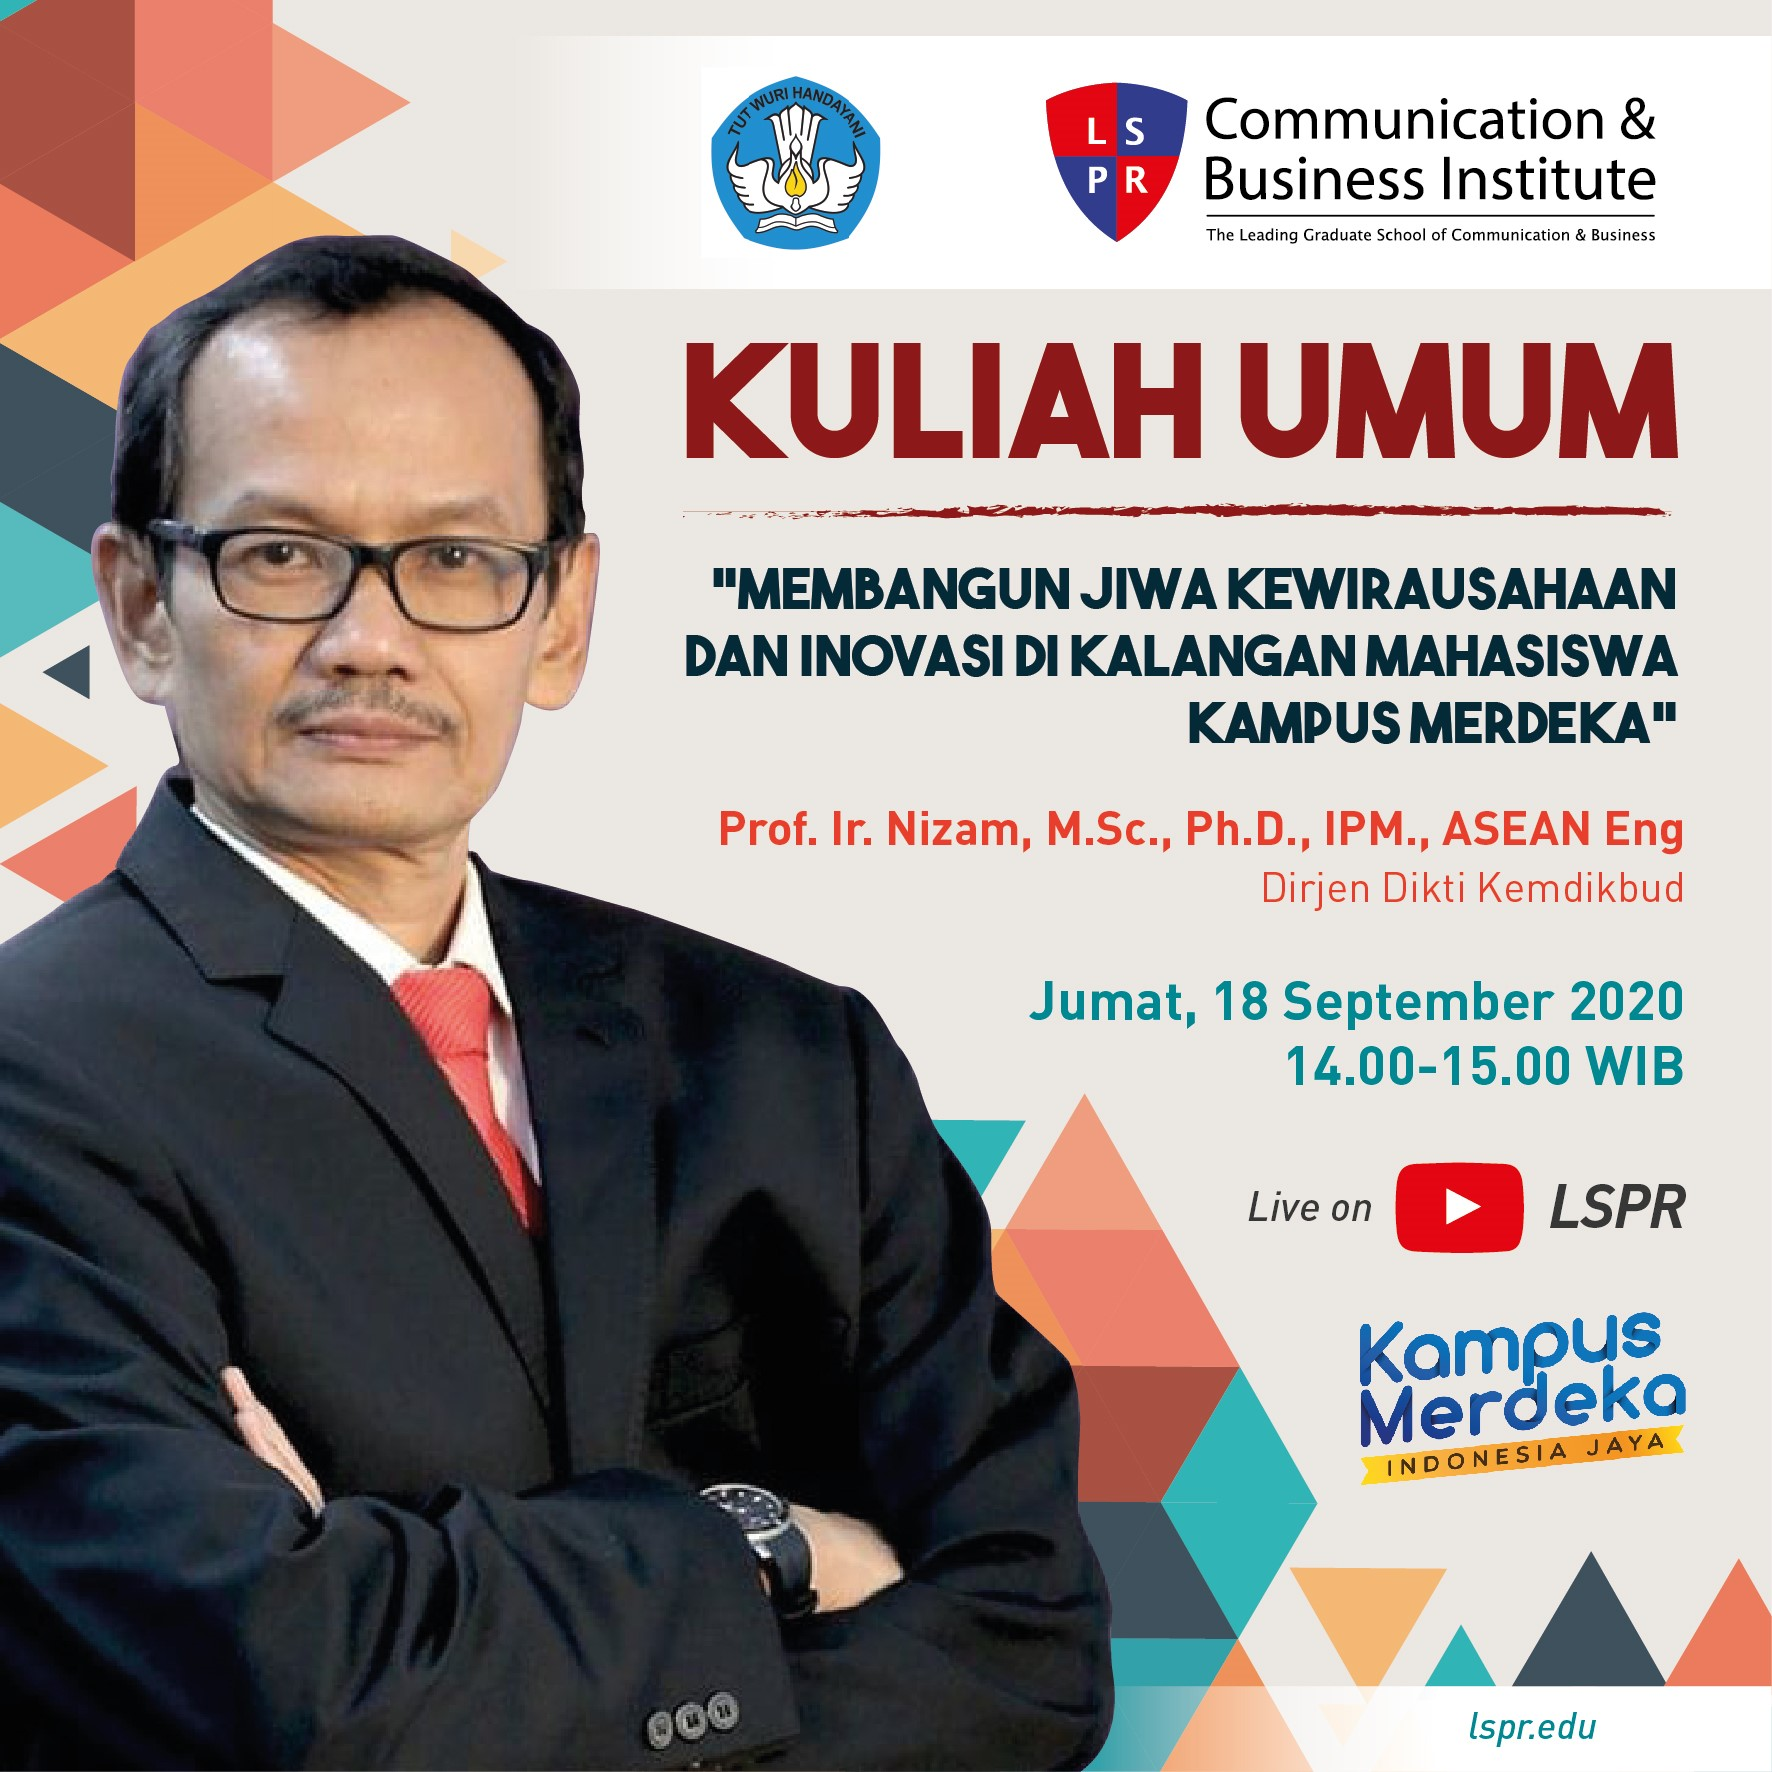 """[HEADLINE] GENERAL LECTURE BY DIRECTOR GENERAL OF HIGHER EDUCATION OF THE MINISTRY OF EDUCATION AND CULTURE Prof. Ir. Nizam, M.Sc., Ph.D., IPM., ASEAN Eng. """"Building Entrepreneurship and Innovation Among Kampus Merdeka Students"""""""